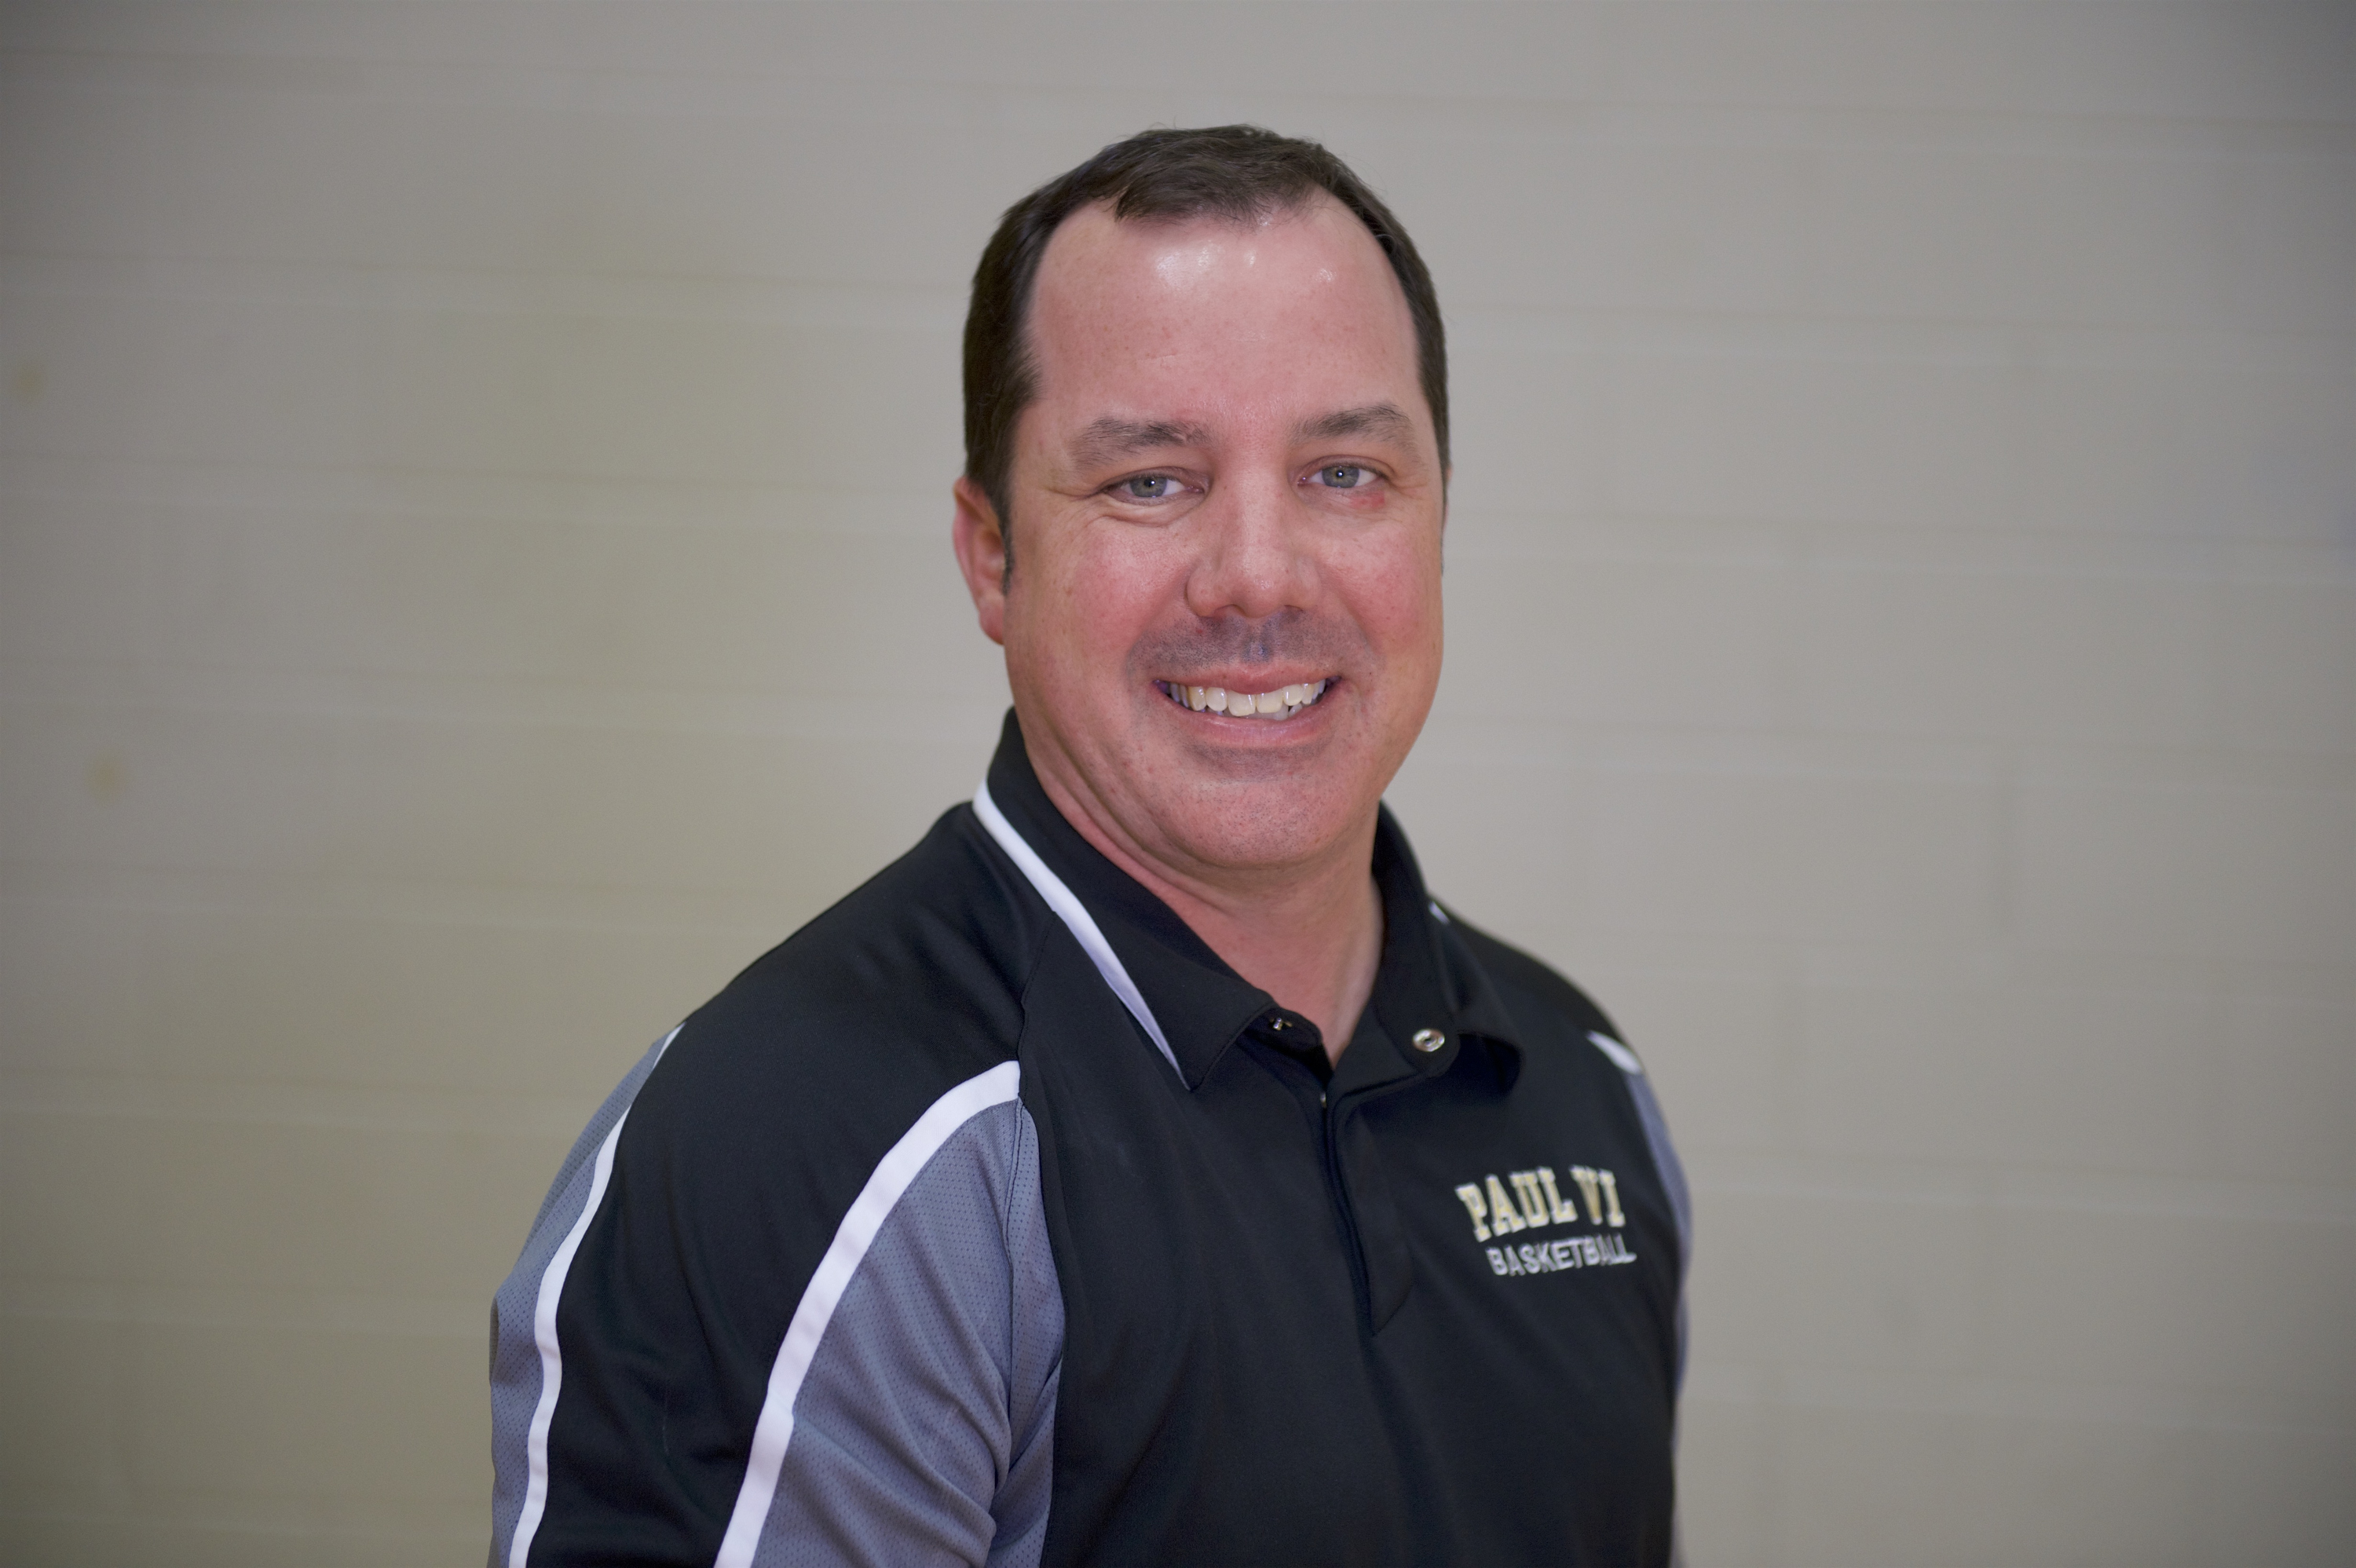 Scott Allen of Paul VI in Fairfax, Va. is the ALL-USA Girls Basketball Coach of the Year (Photo: Rafael Suanes, USA TODAY Sports)